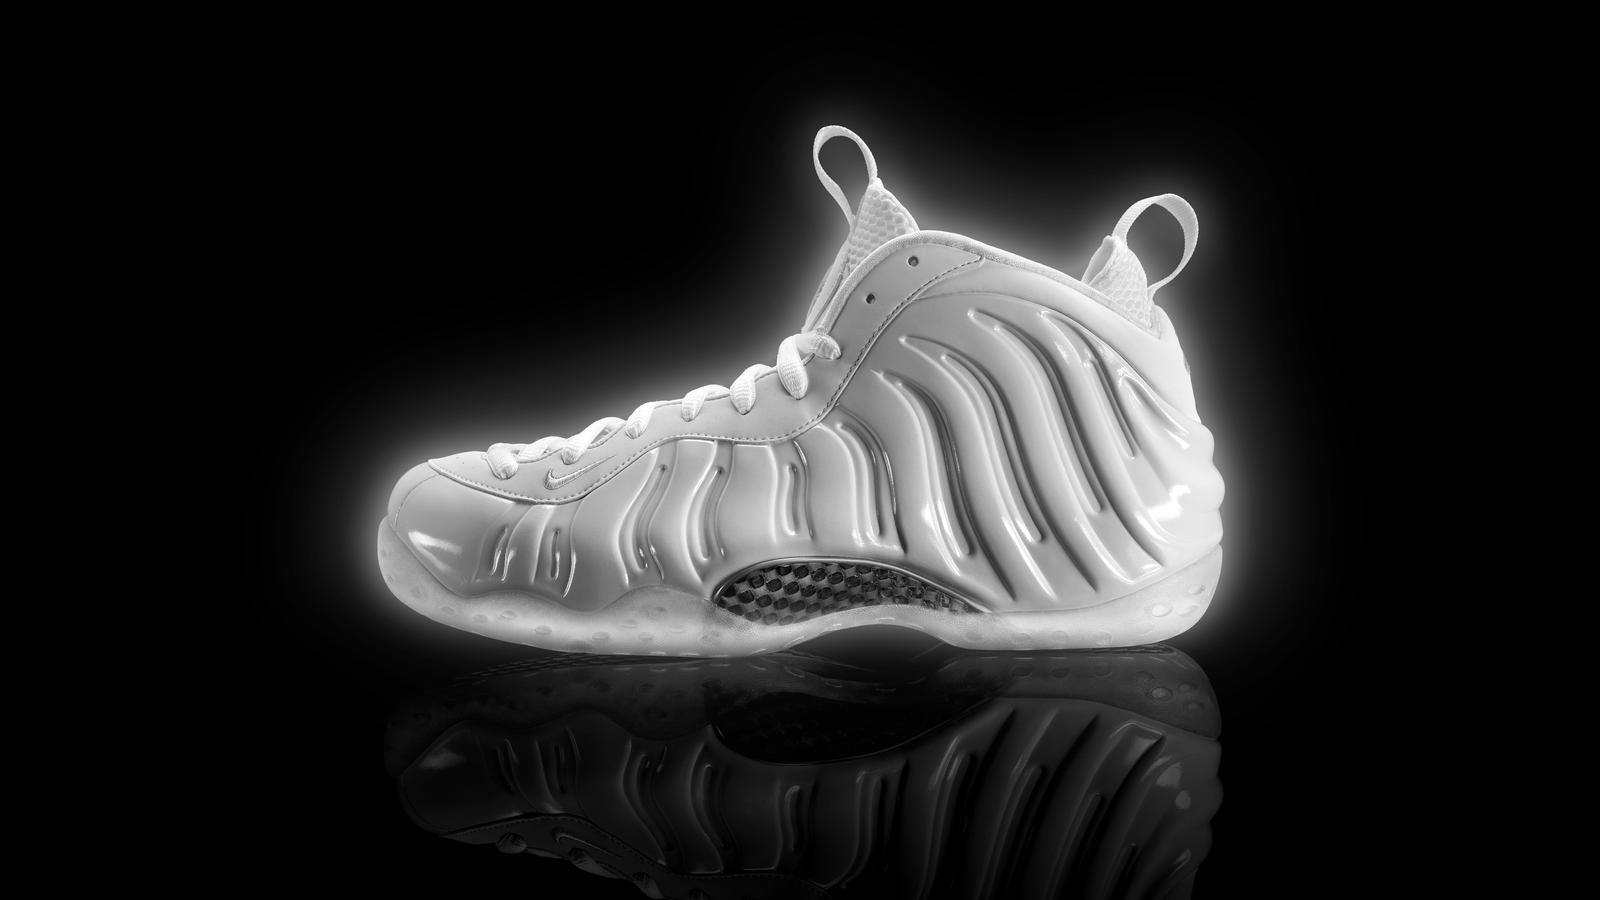 3446f9062ba Pure Radiance  White Nike Foamposite One Is Cleanest Yet - Nike News